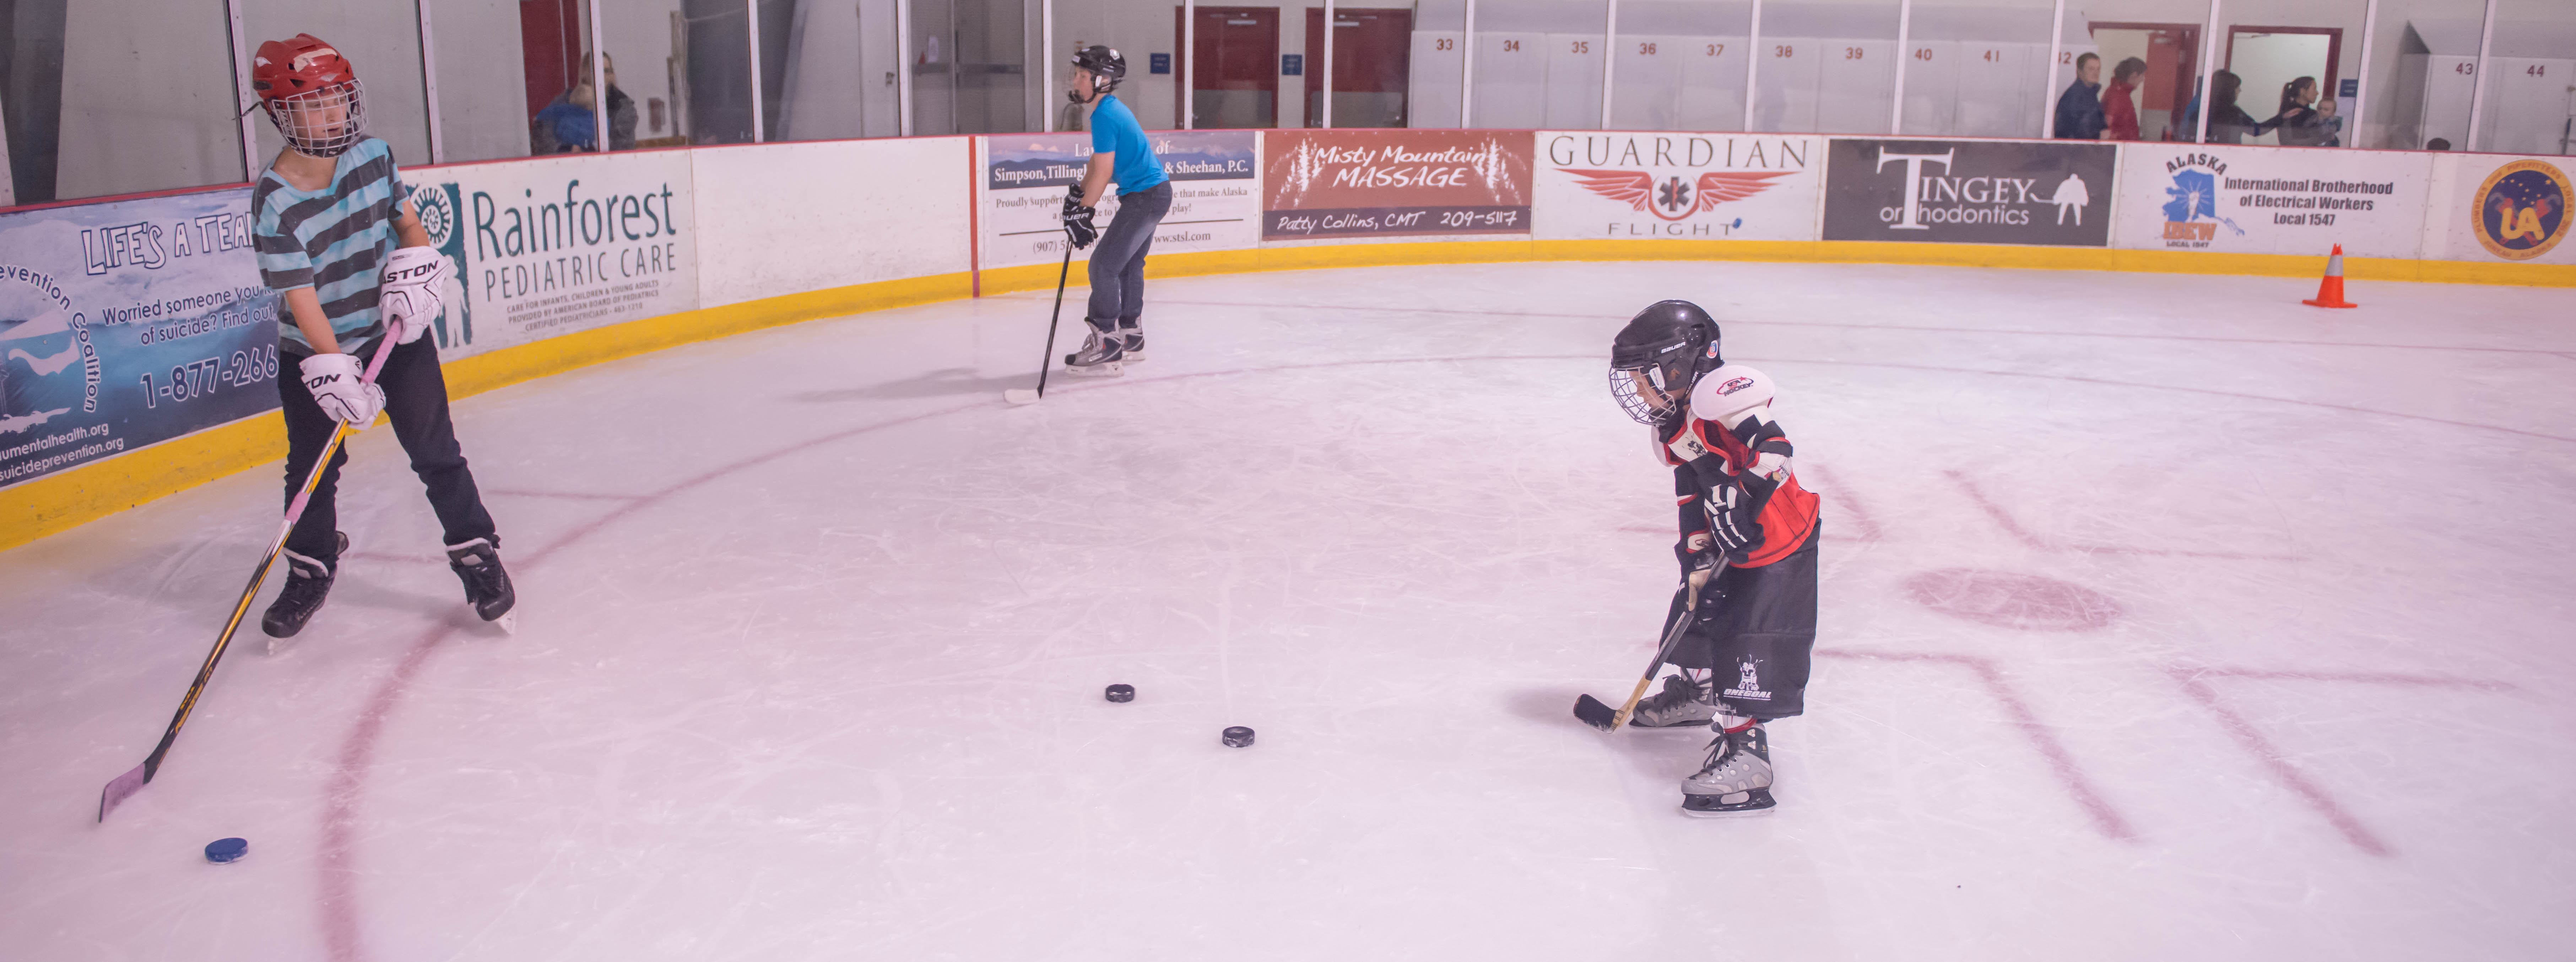 Jack York works with Braedon Pearson during JDIA's Learn to Play afternoon at Treadwell Ice Arena. (Photo by Steve Quinn)